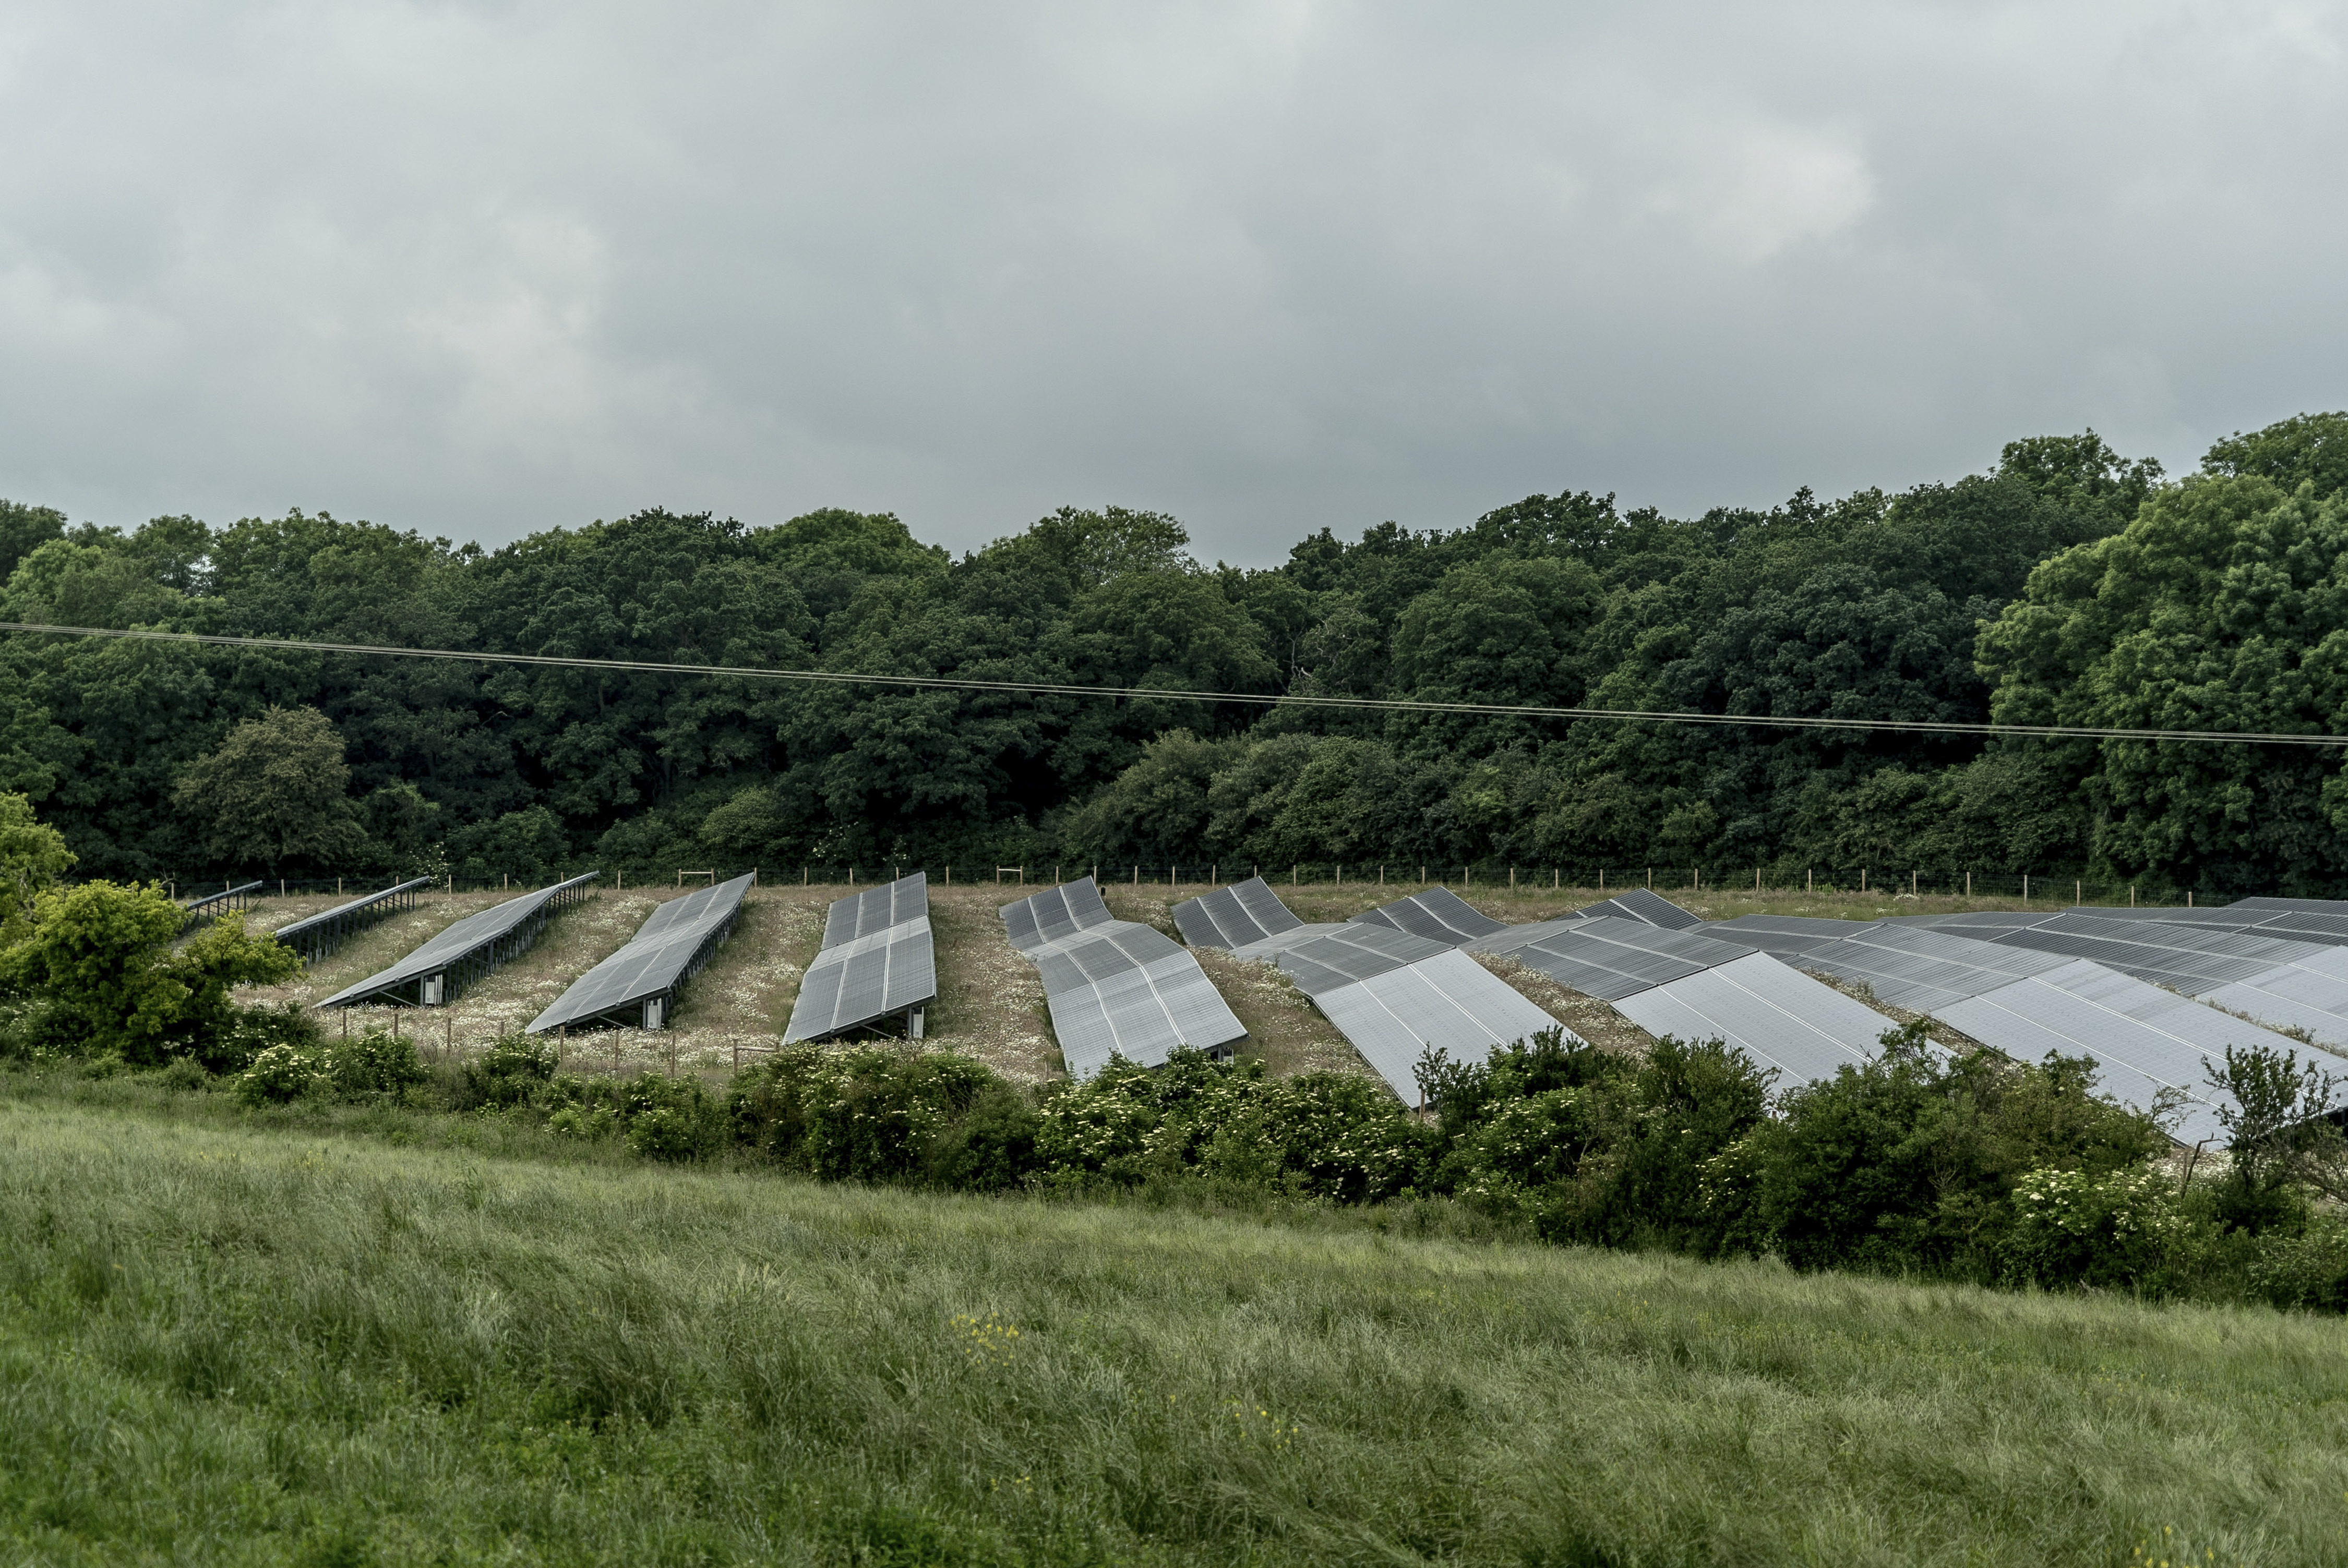 'We're not saying that no solar can be done,' Council member Matthew J. Walter said. 'It's just about the farms.' (Andrew Testa/ New York Times file photo)